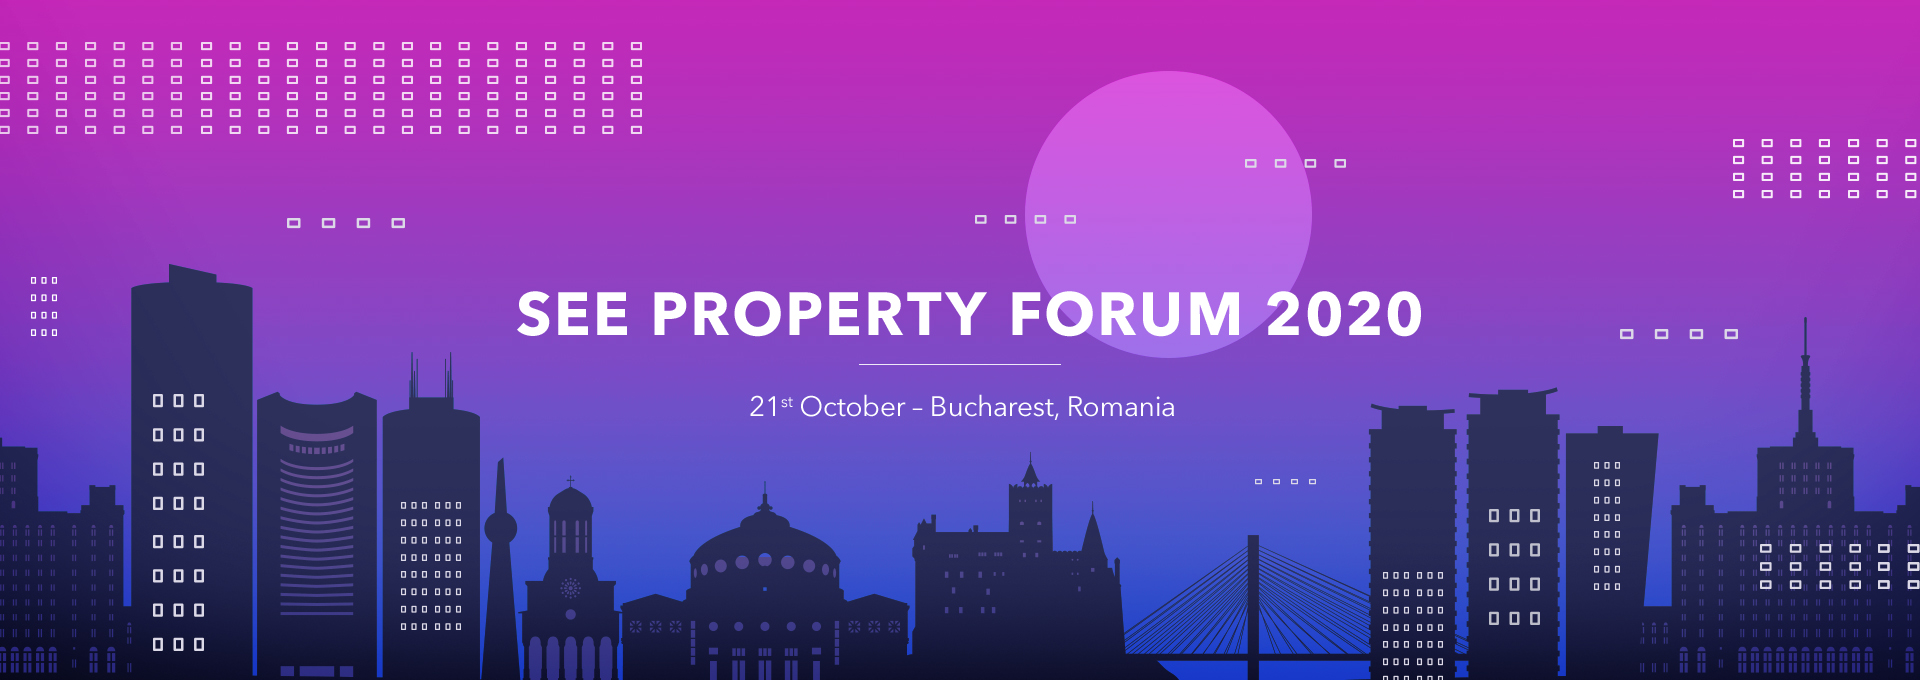 SEE Property Forum 2020 - Bucharest, Romania